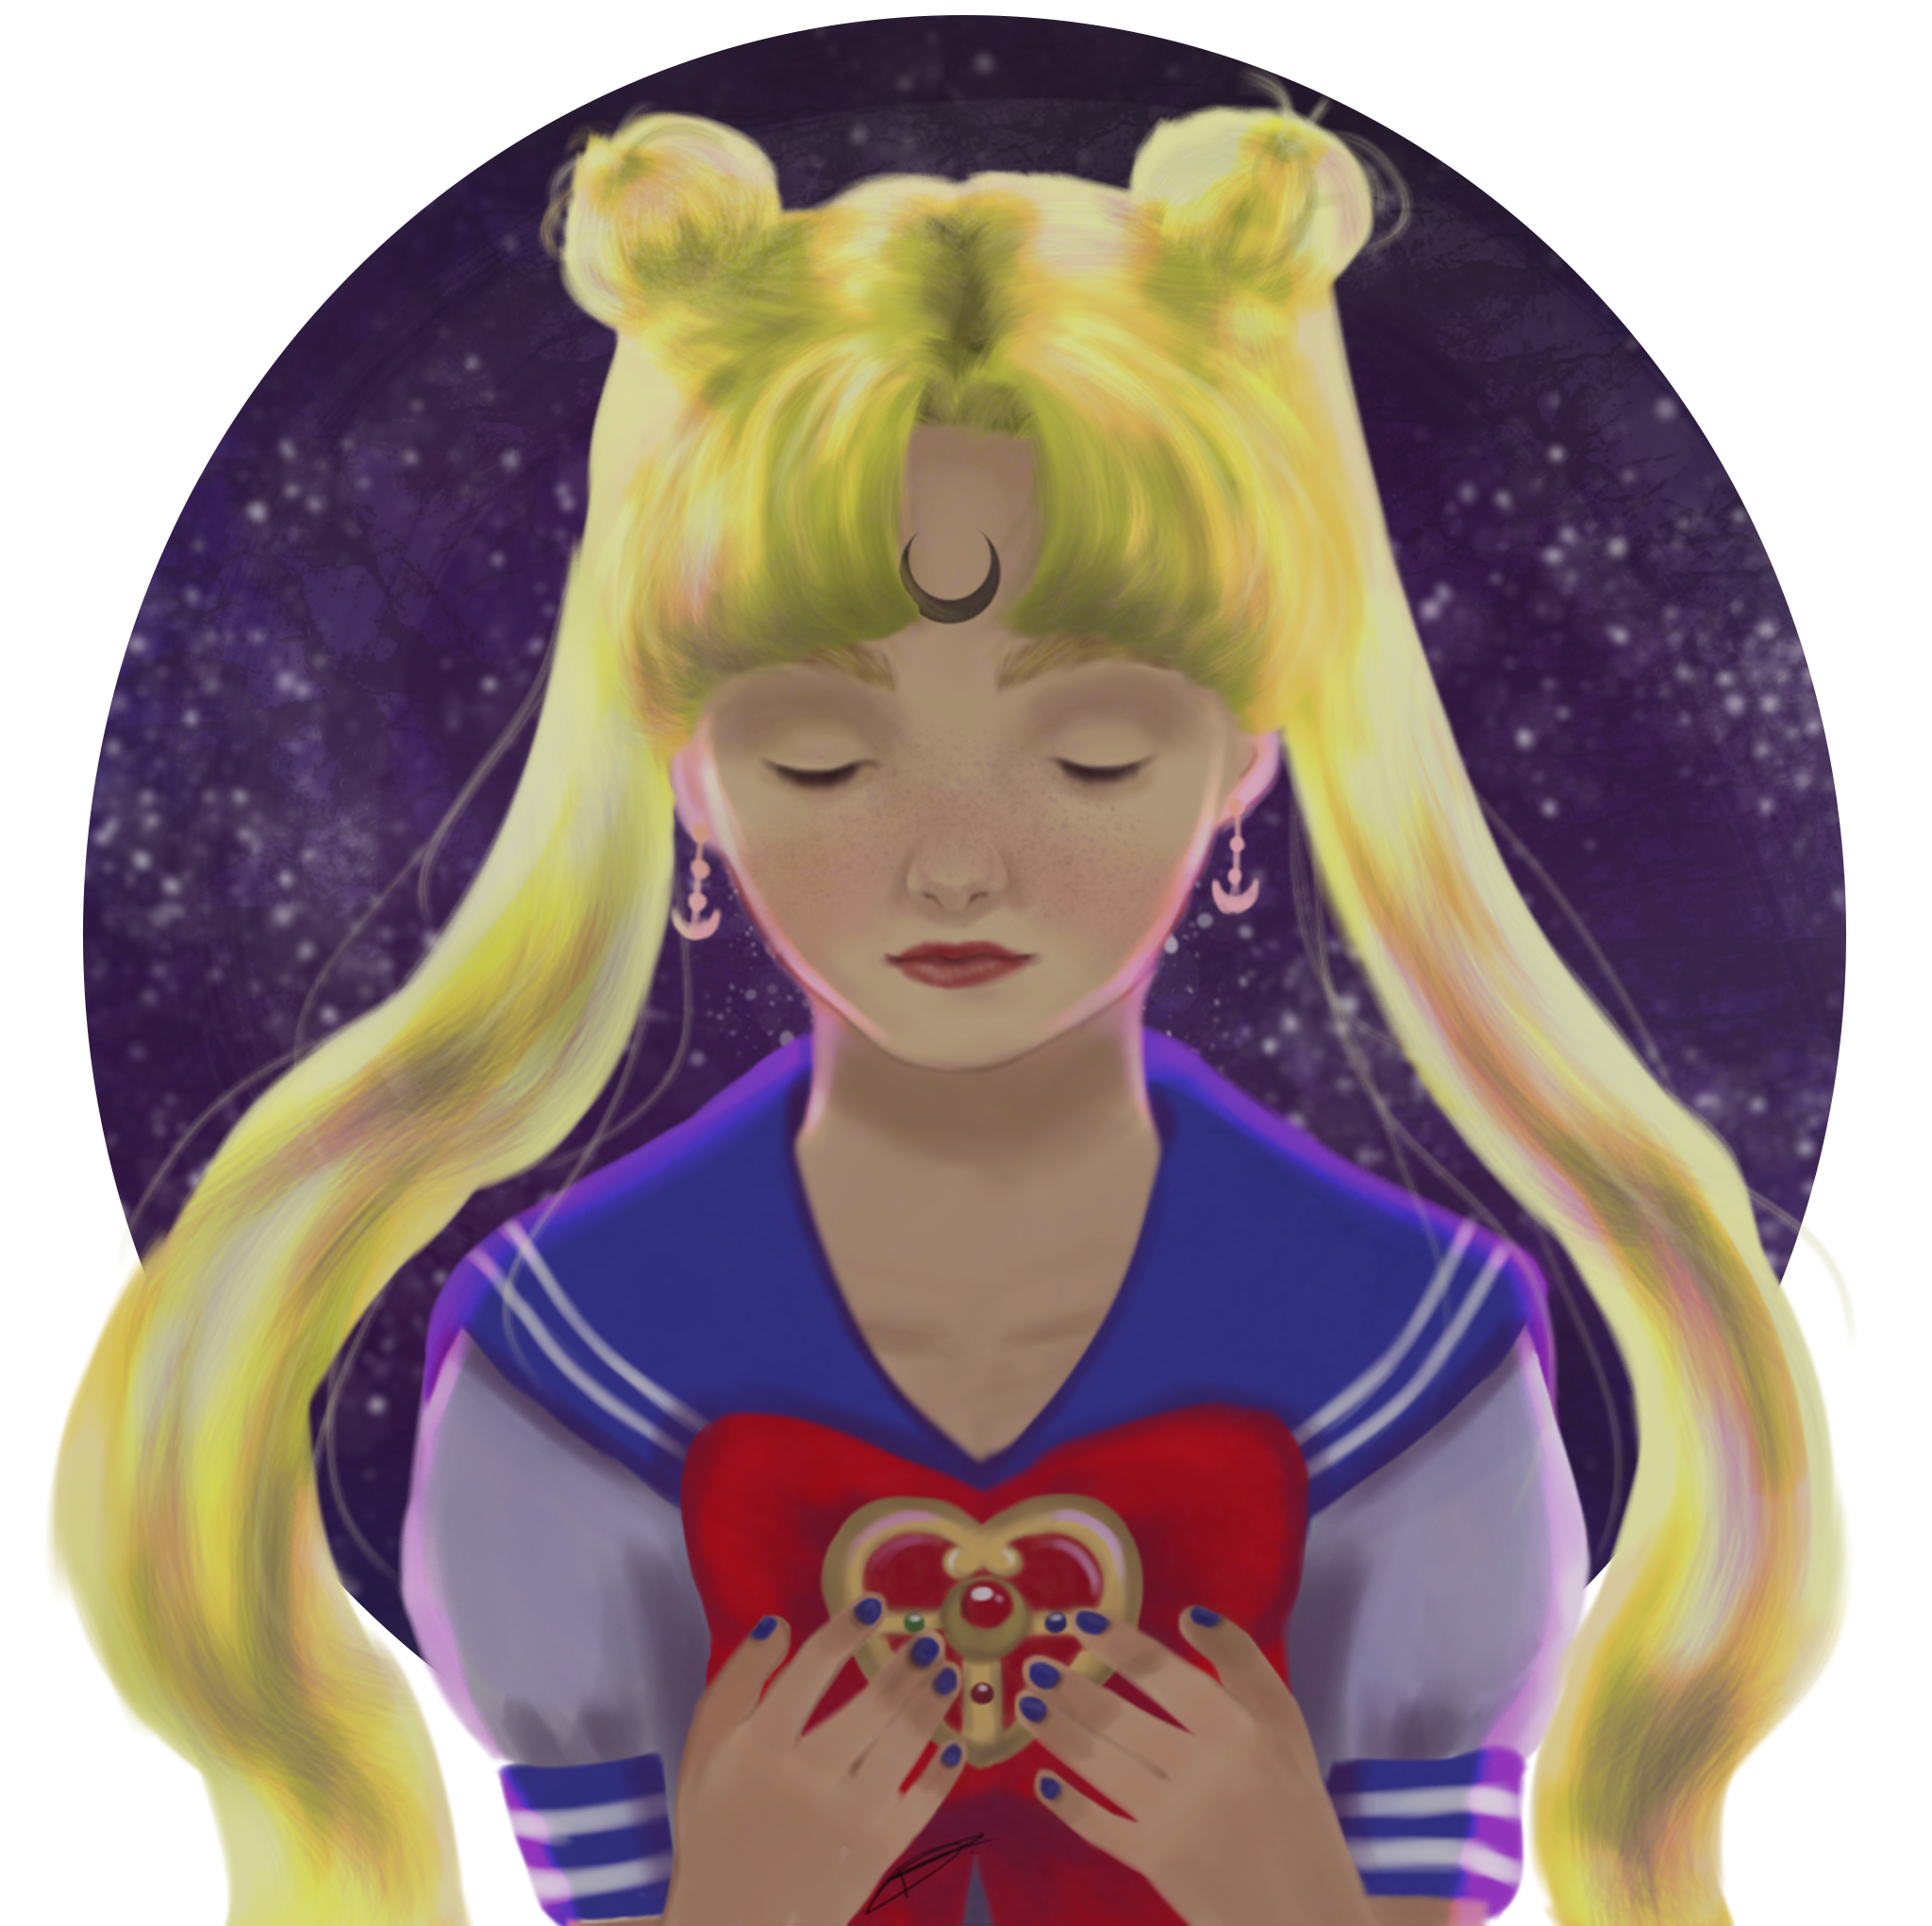 Sailor moon redimensioned 2048